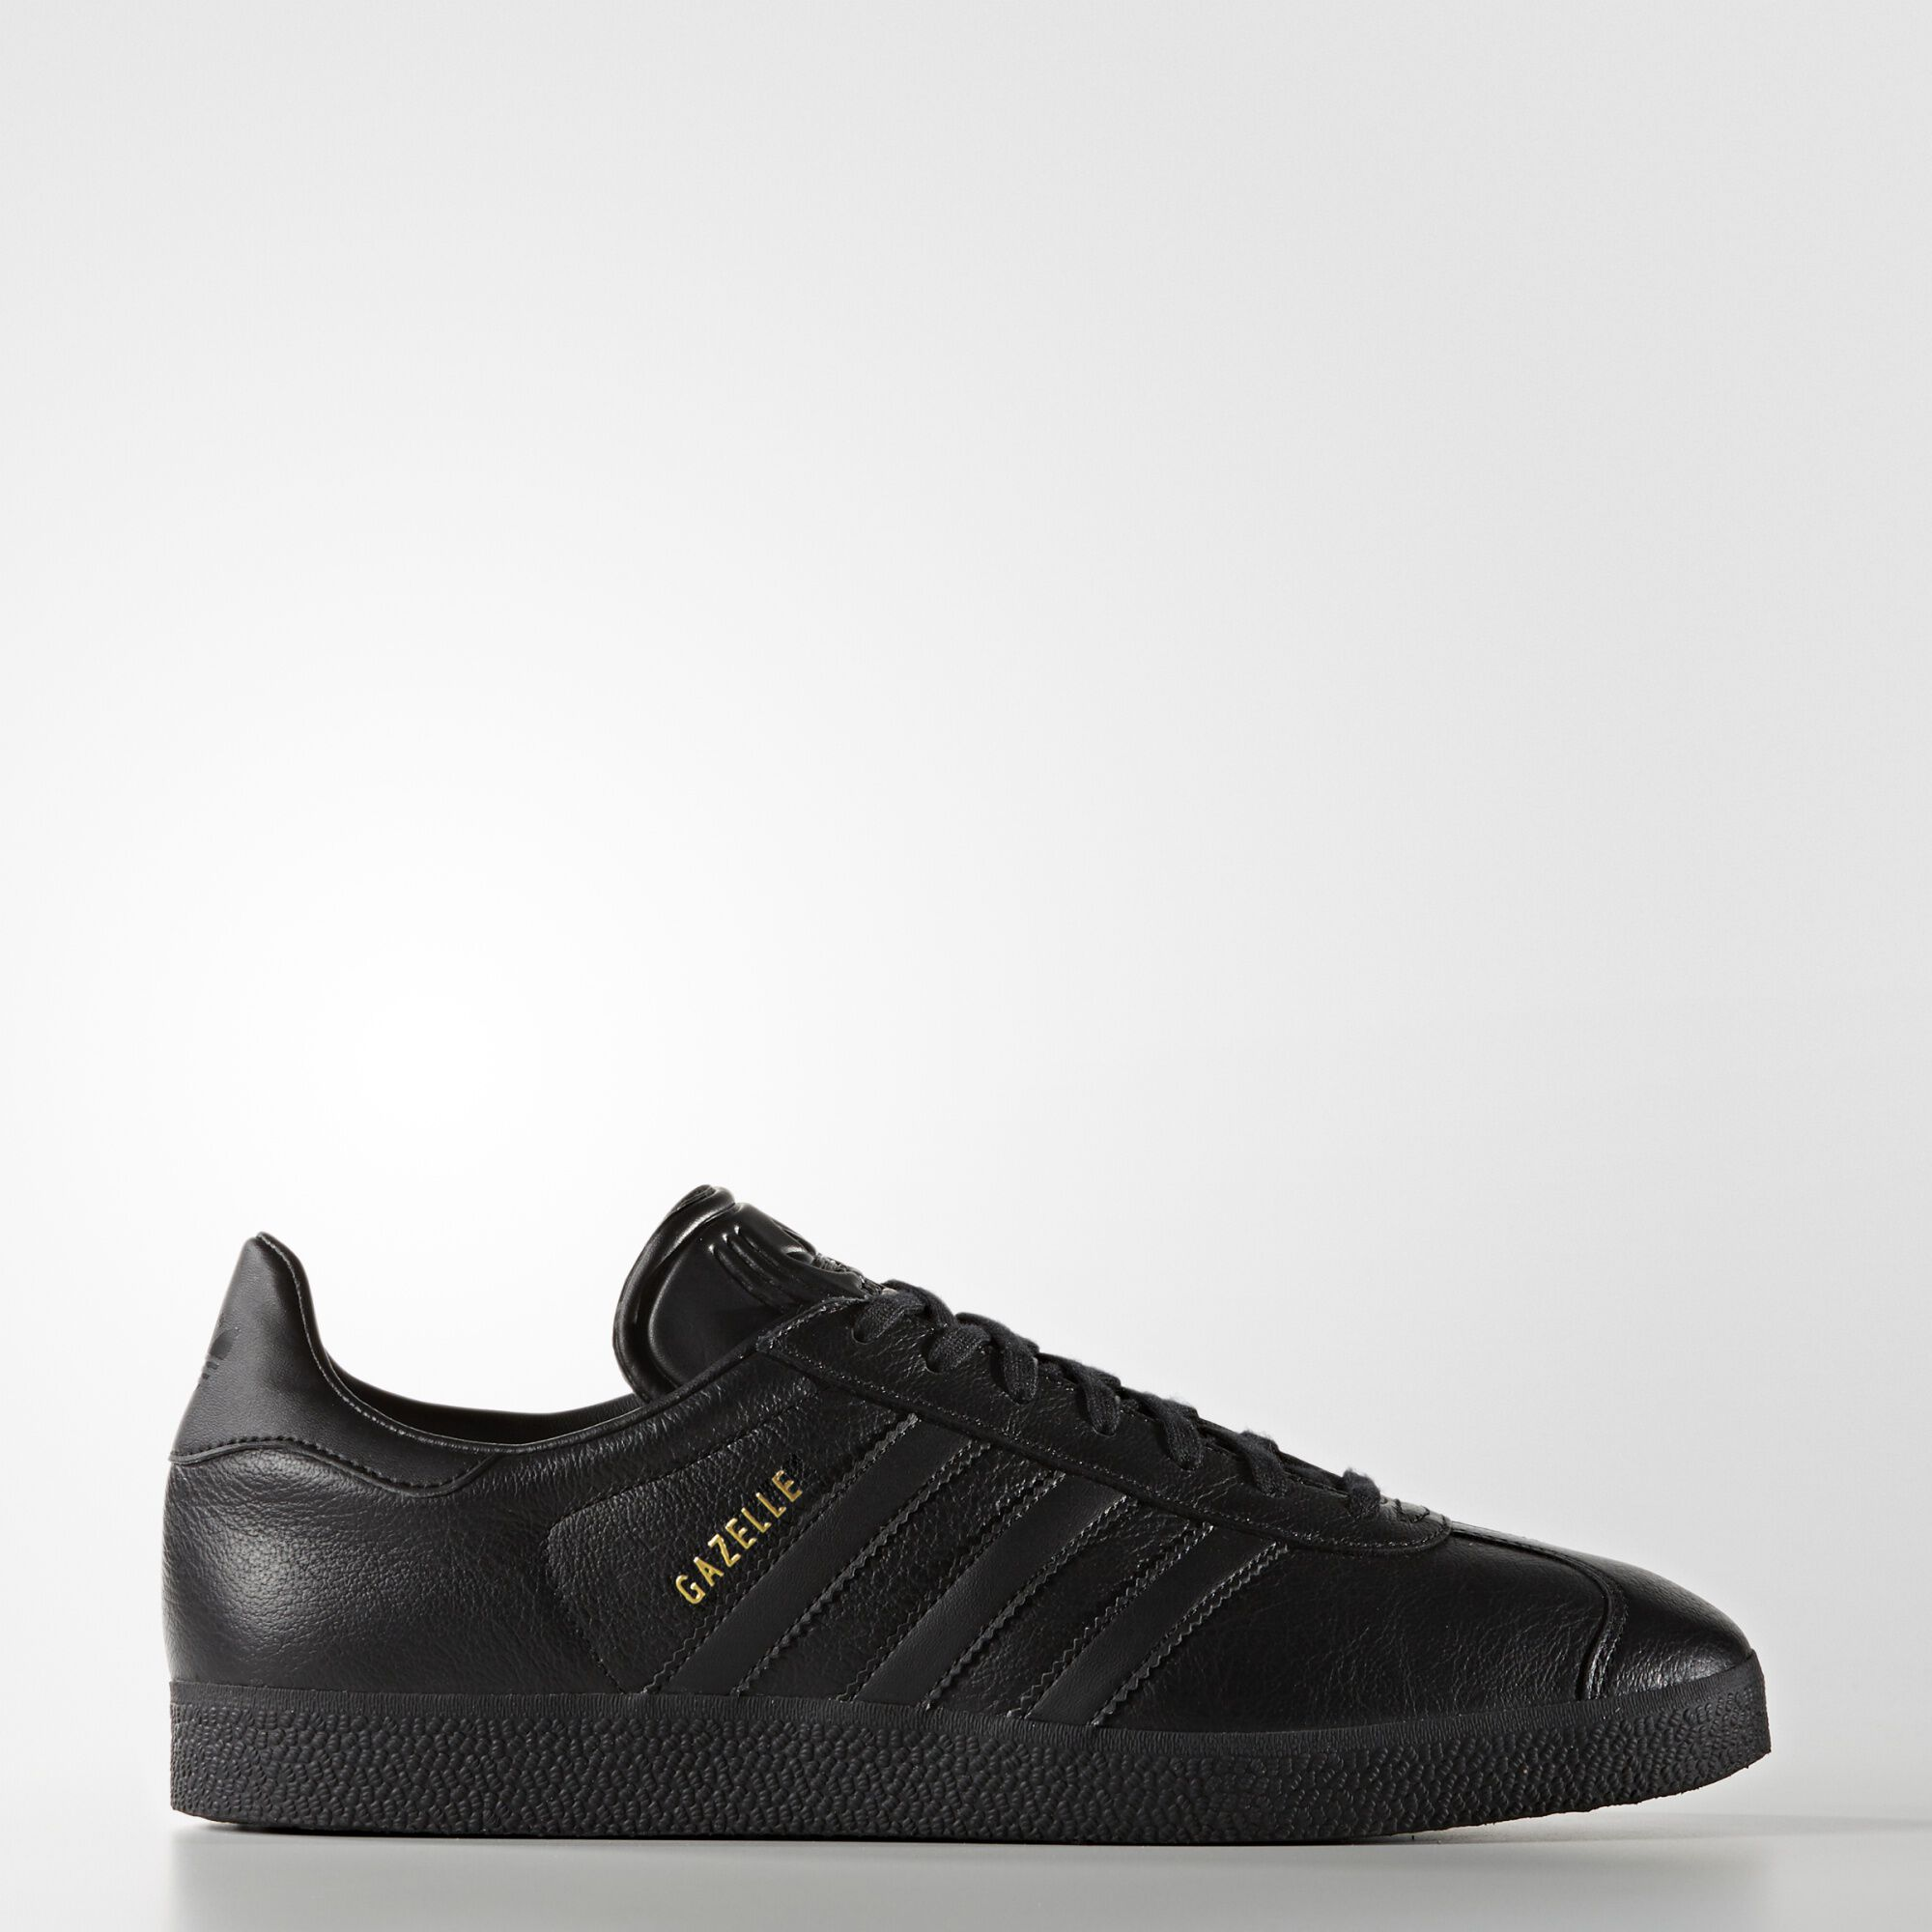 adidas gazelle womens black